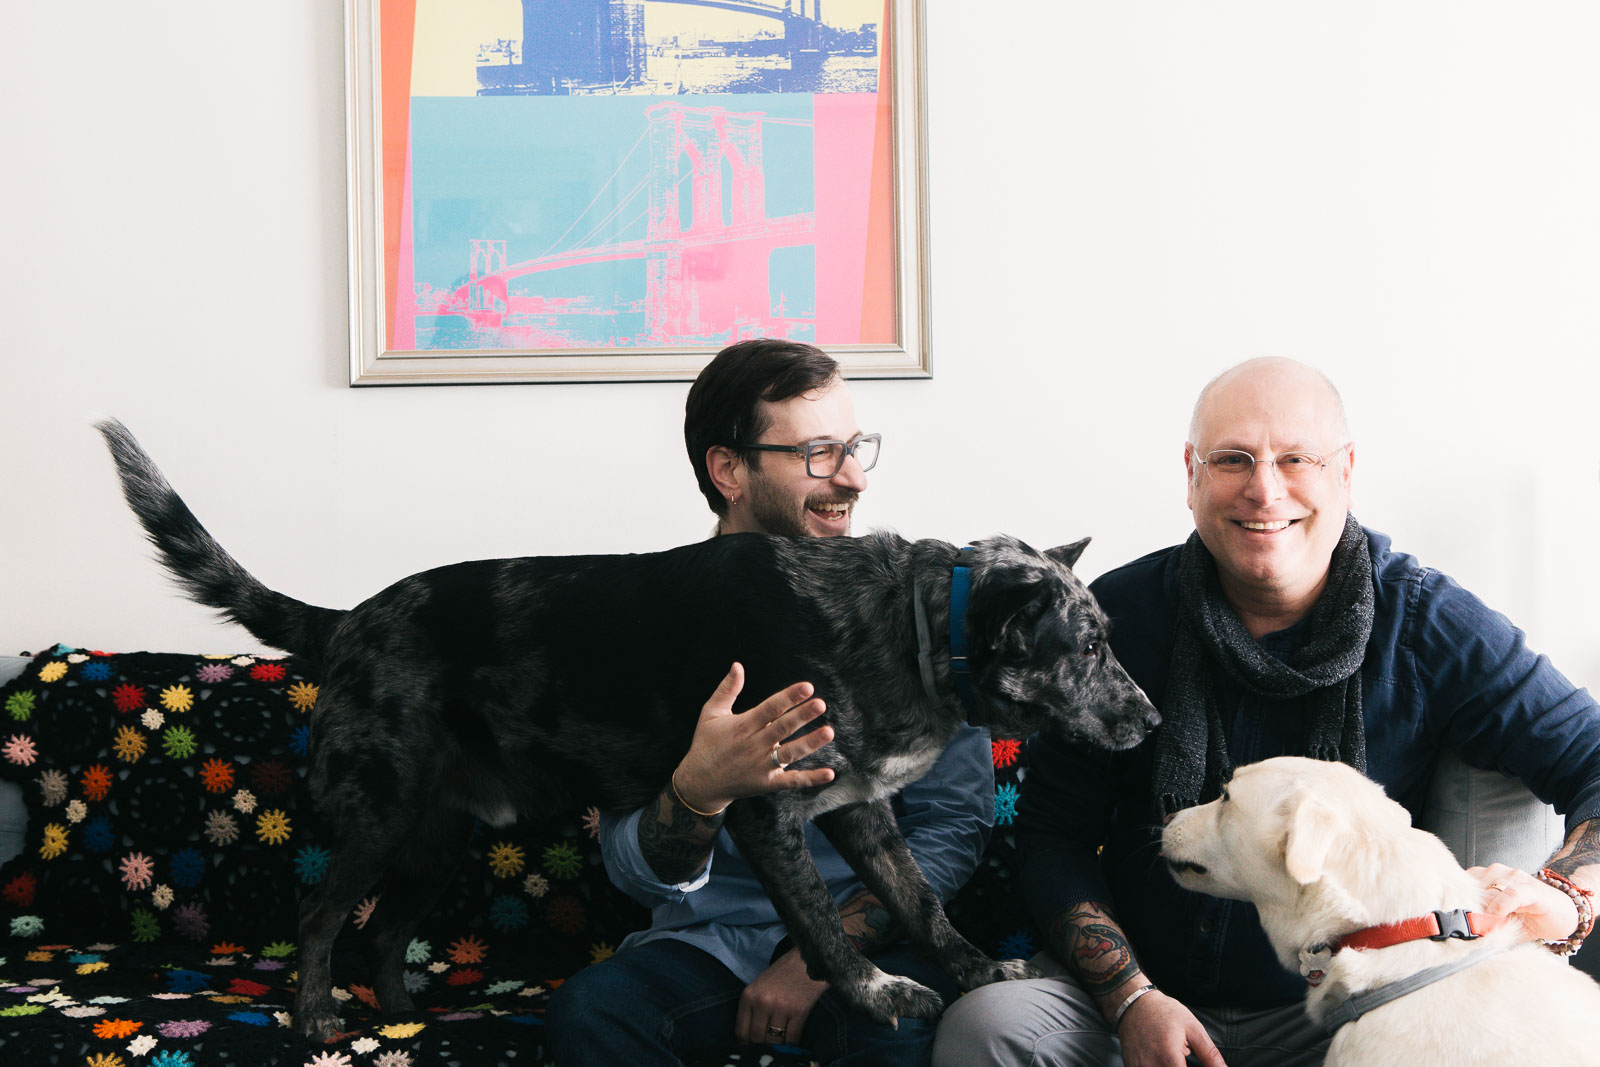 Joe and Gary with their rescue pups Carter and Allie